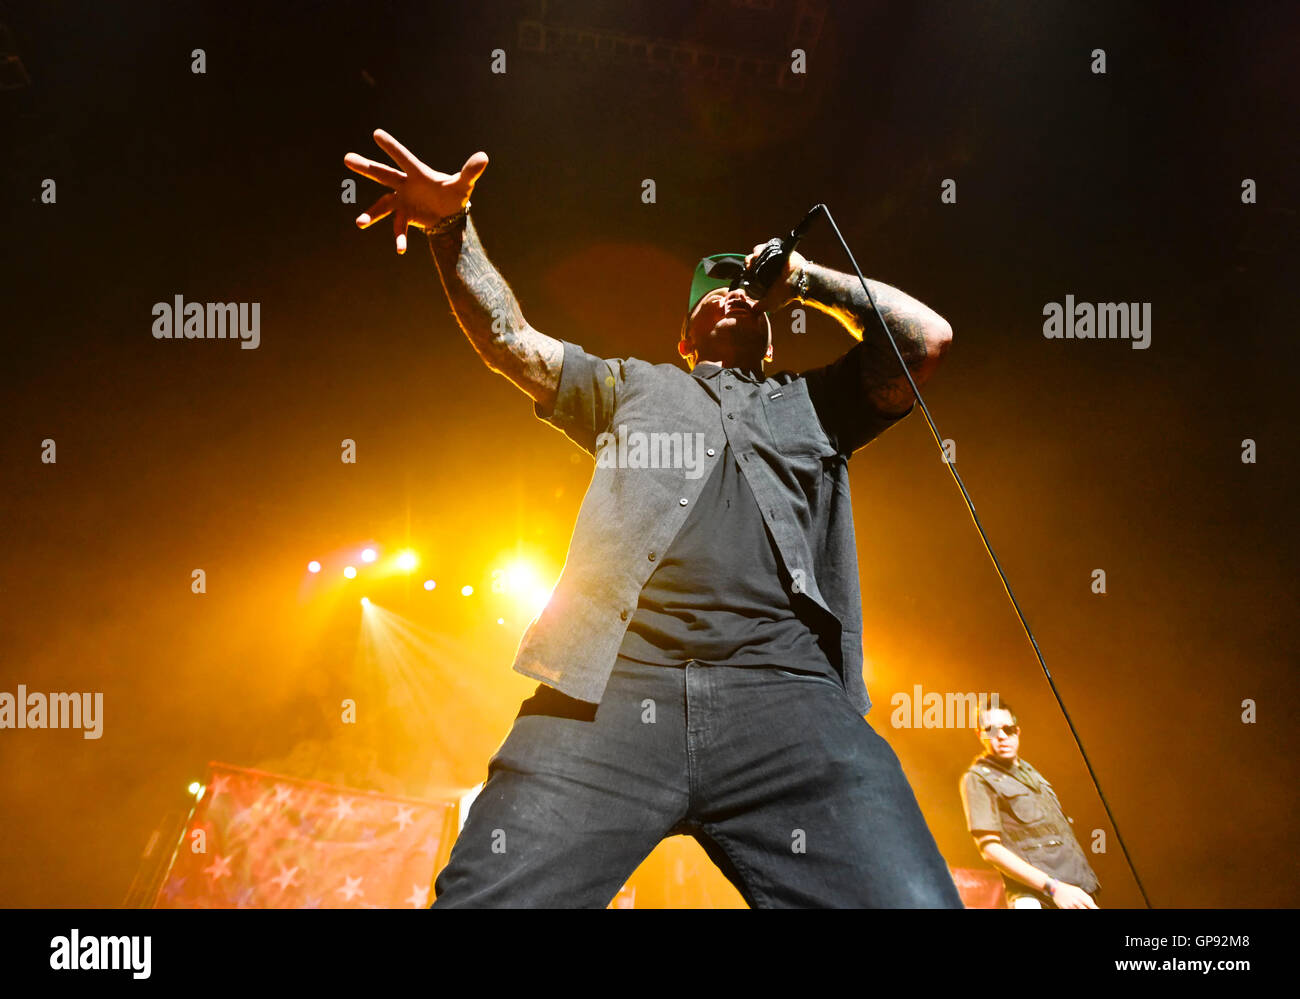 Las Vegas, Nevada, USA. 2nd September, 2016. Seth Brooks Binzer, better known by his stage name Shifty Shellshock Stock Photo